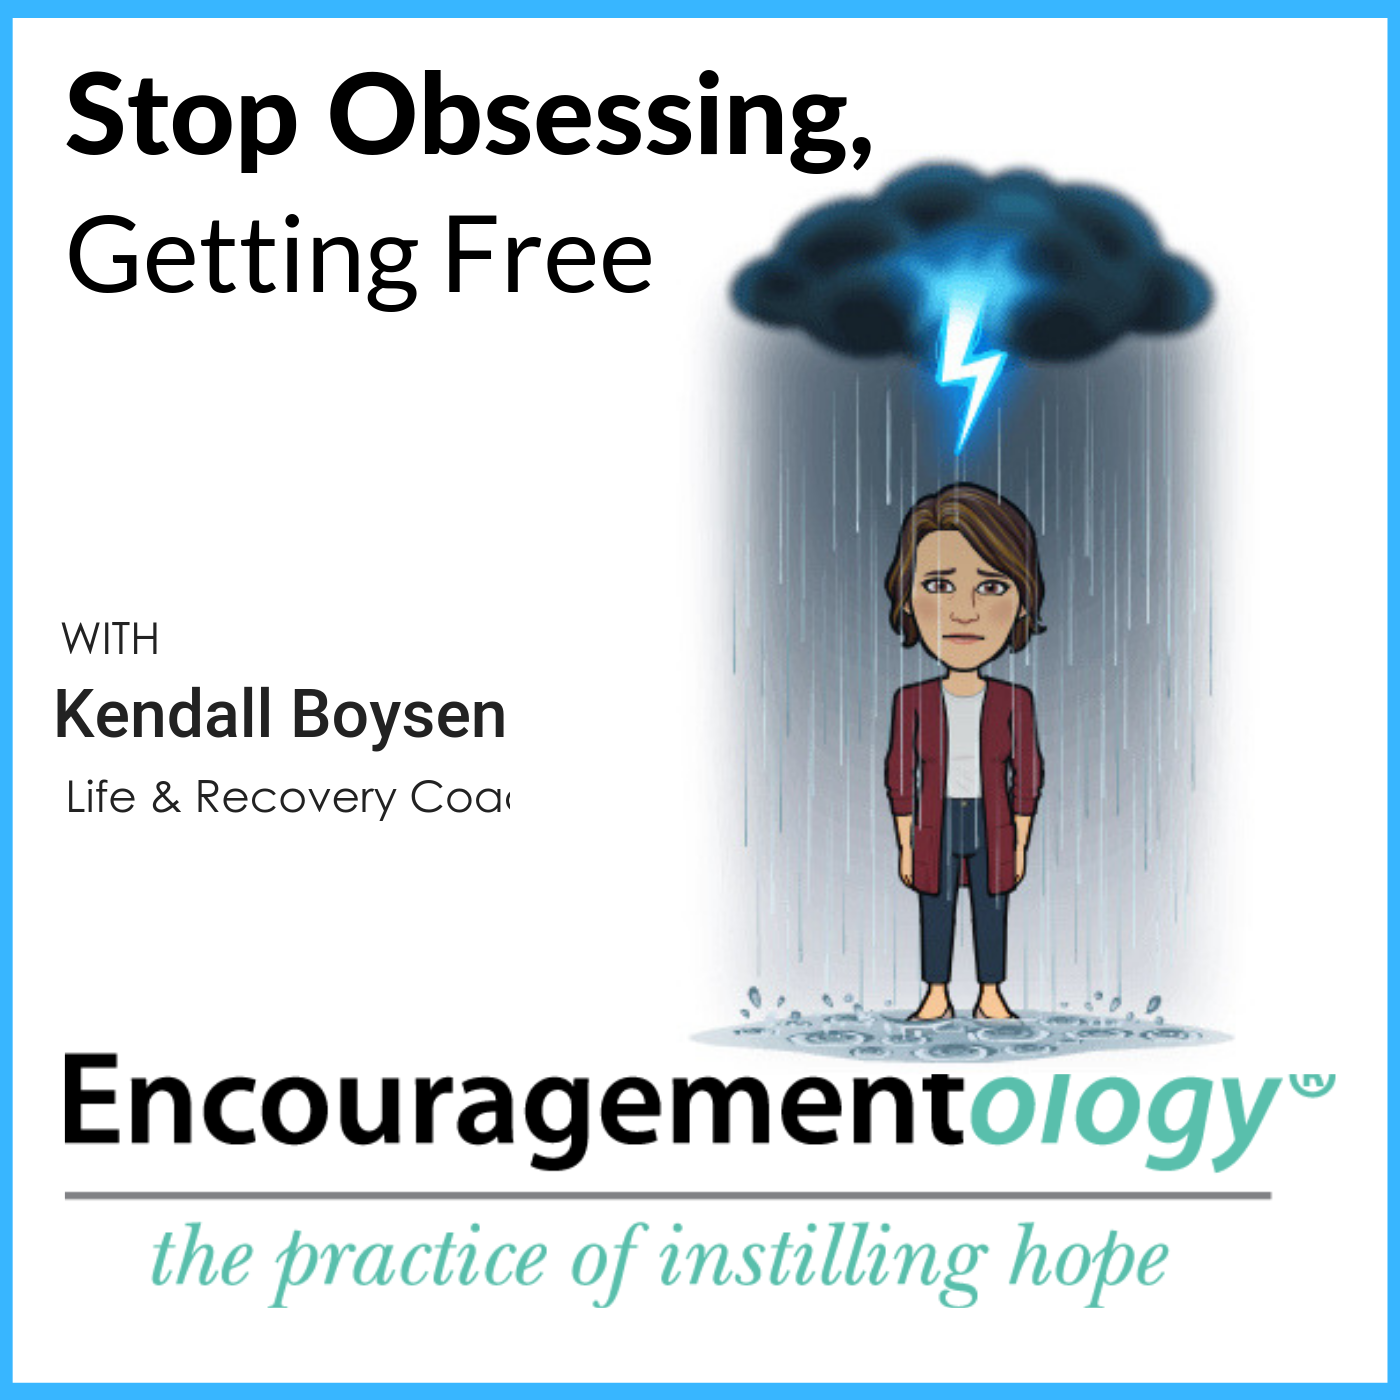 Stop Obsessing, Getting Free